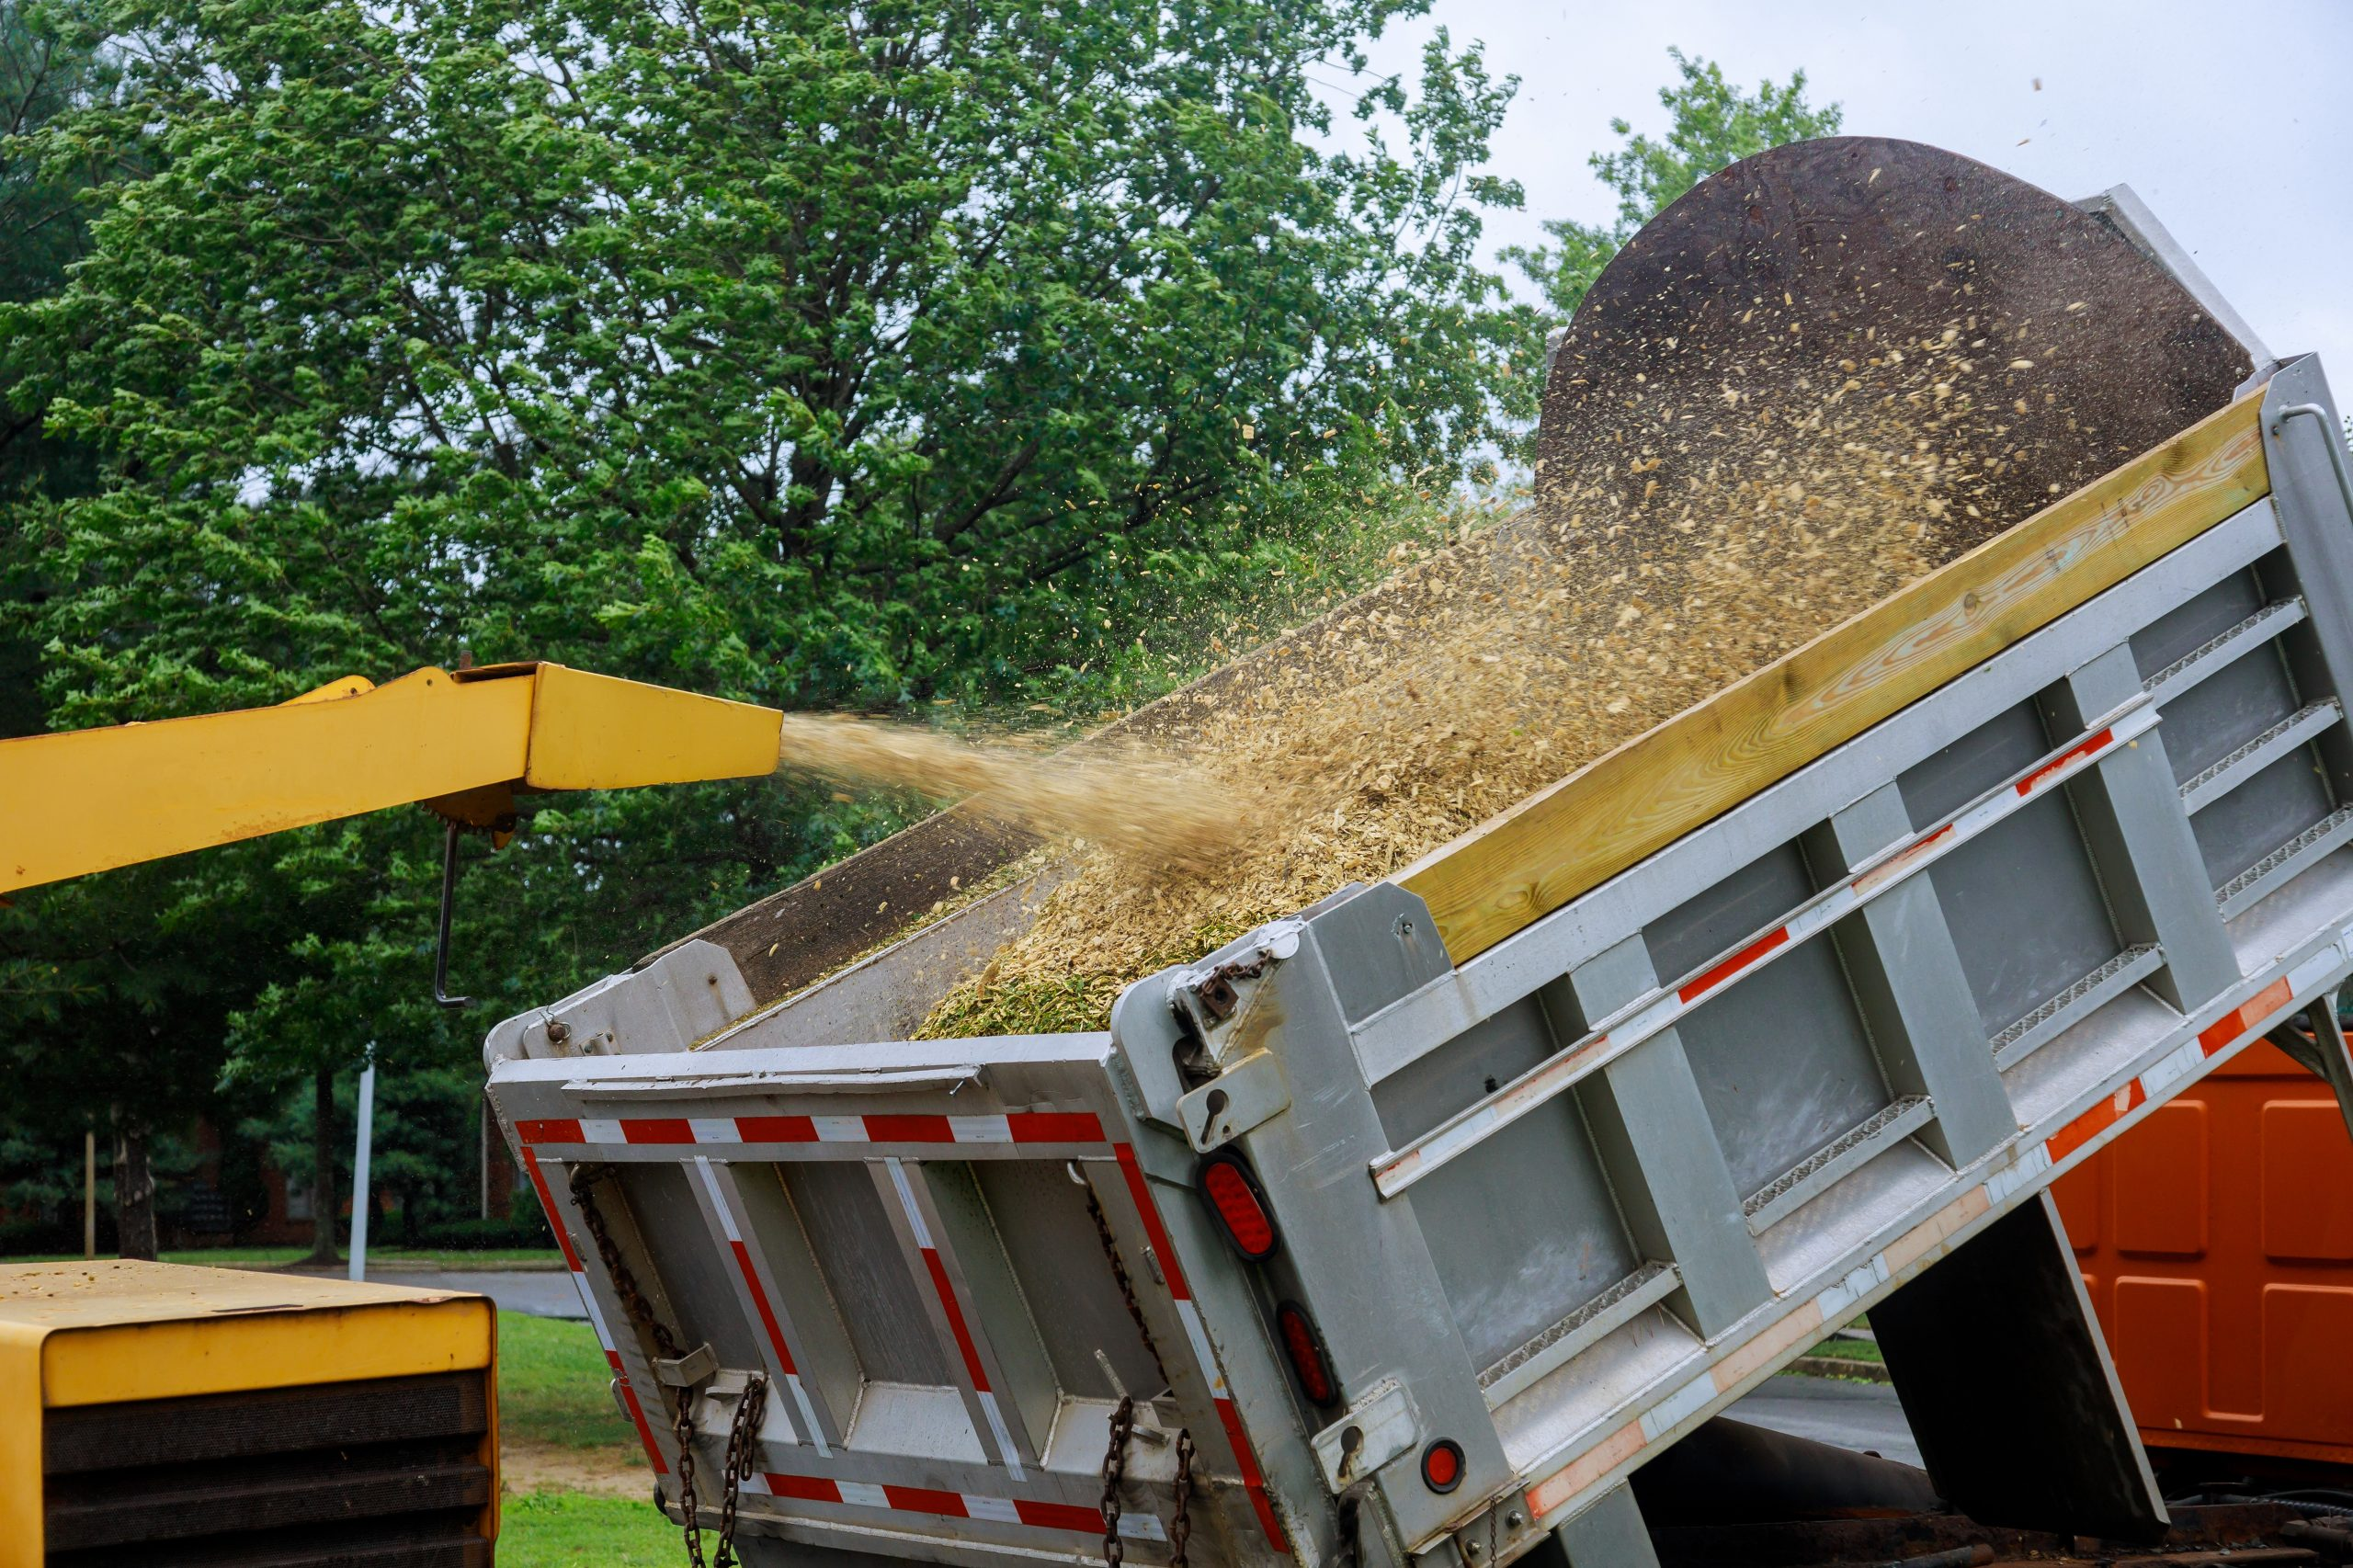 A wood chipper at work machinery, wood shredder placed in the intake chute for chipping after an unexpected hurricane storm